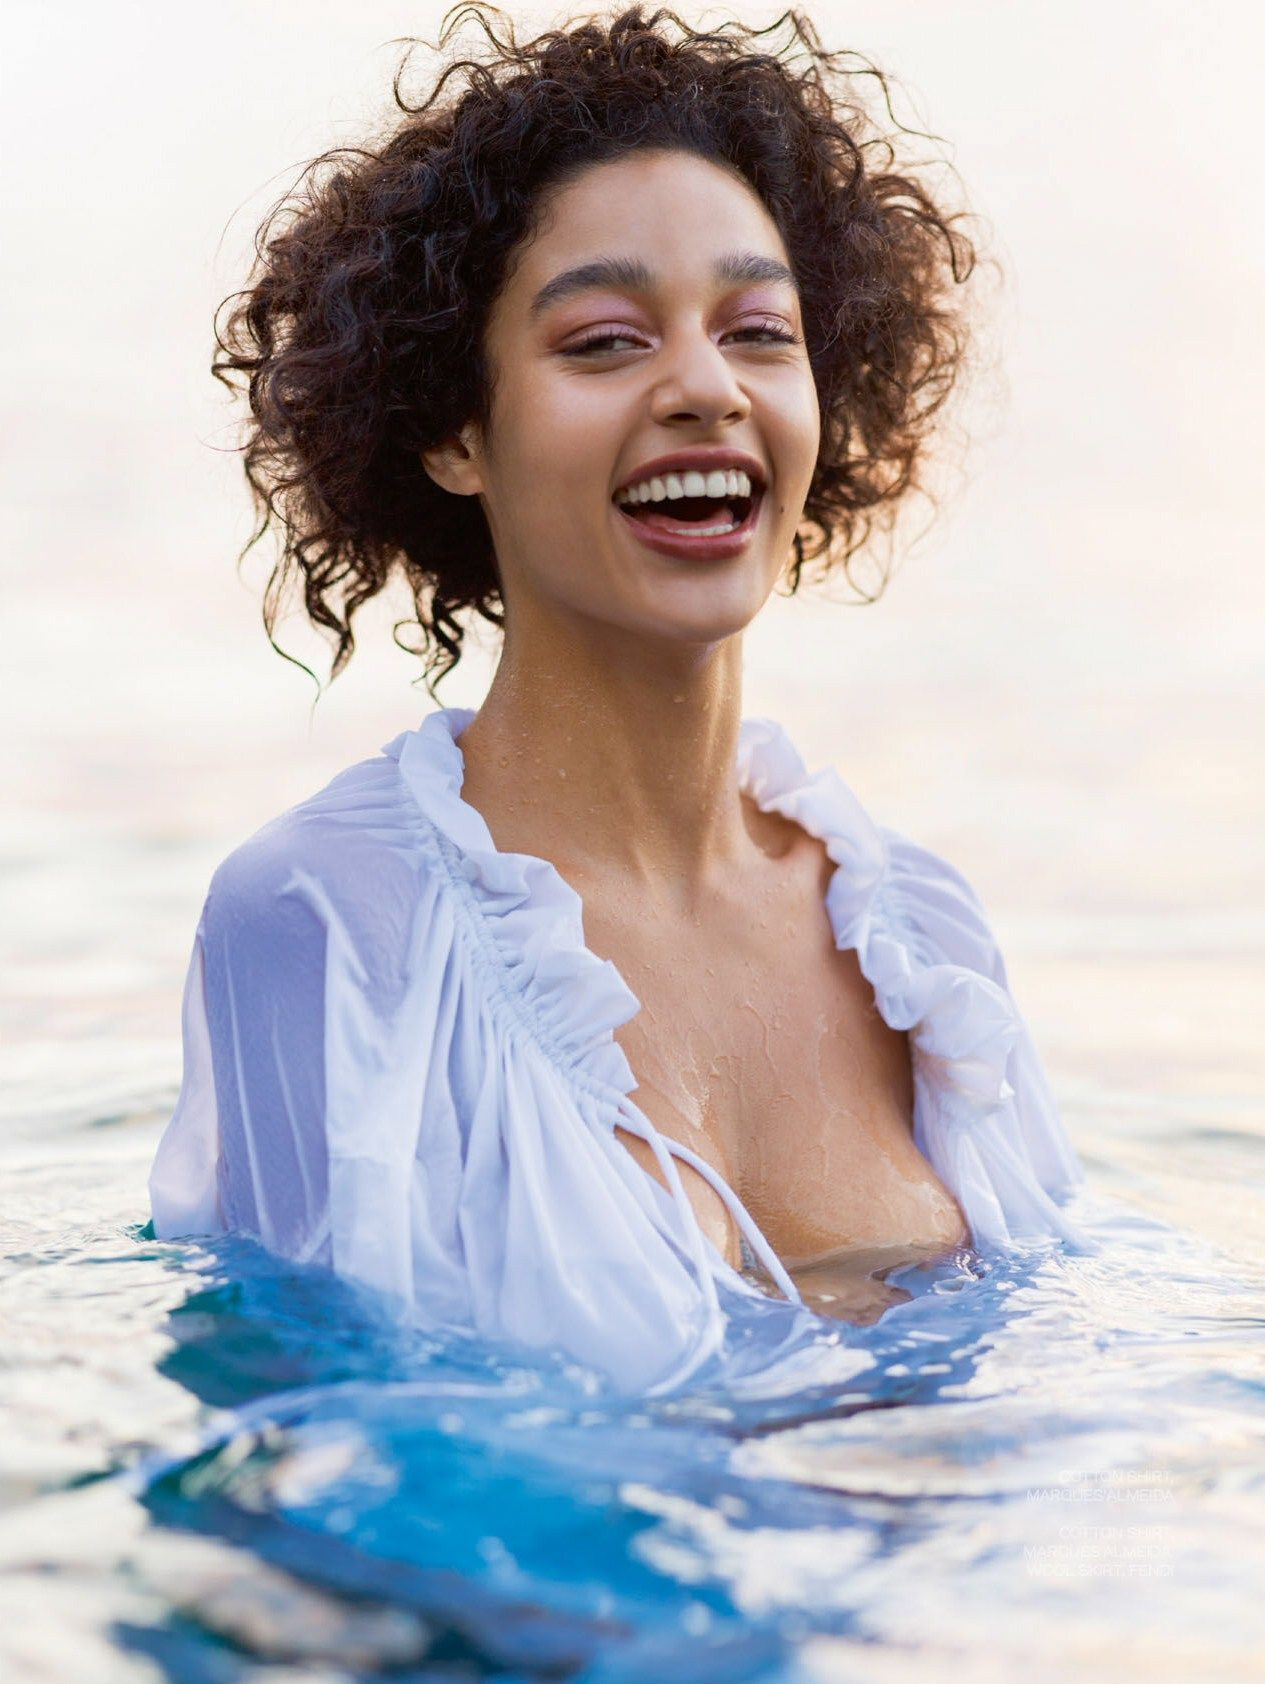 Images Damaris Goddrie naked (15 foto and video), Pussy, Fappening, Selfie, swimsuit 2015